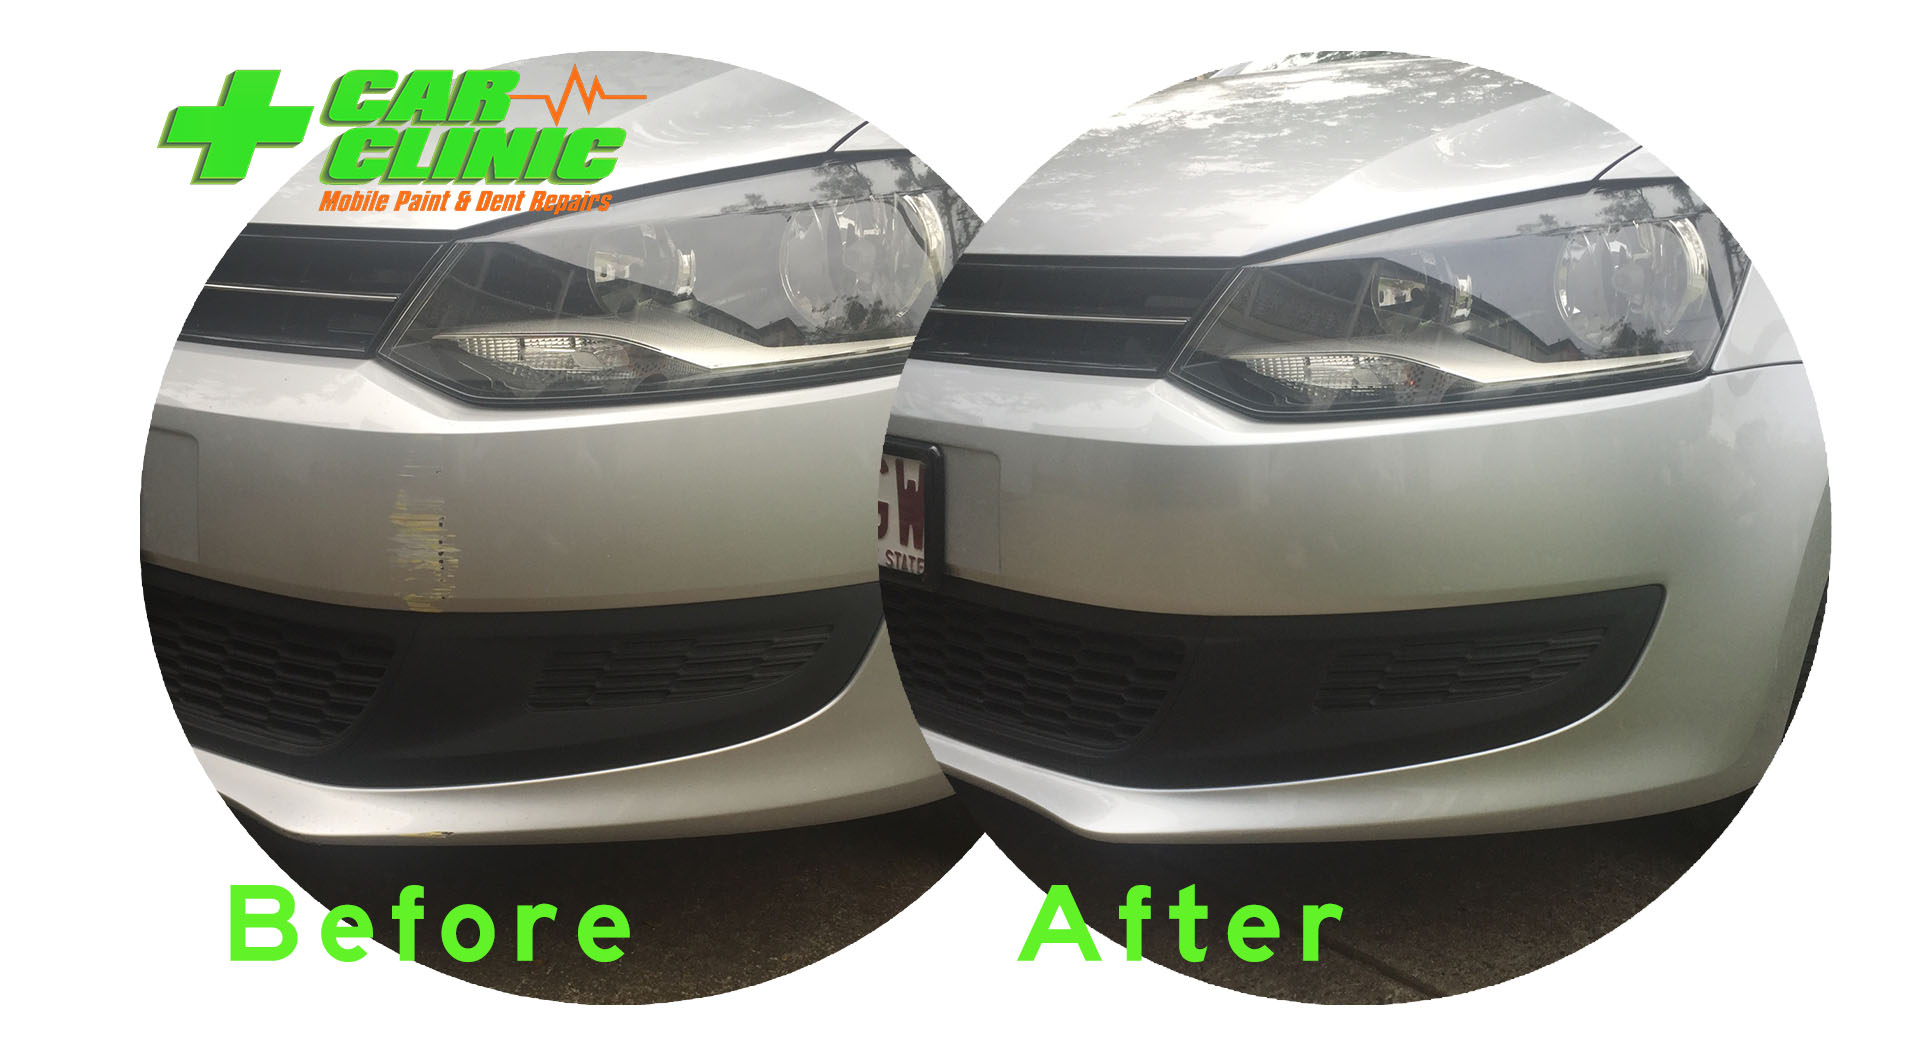 Mobile Paint & Dent Repairs - Brisbane - Before After Image 06